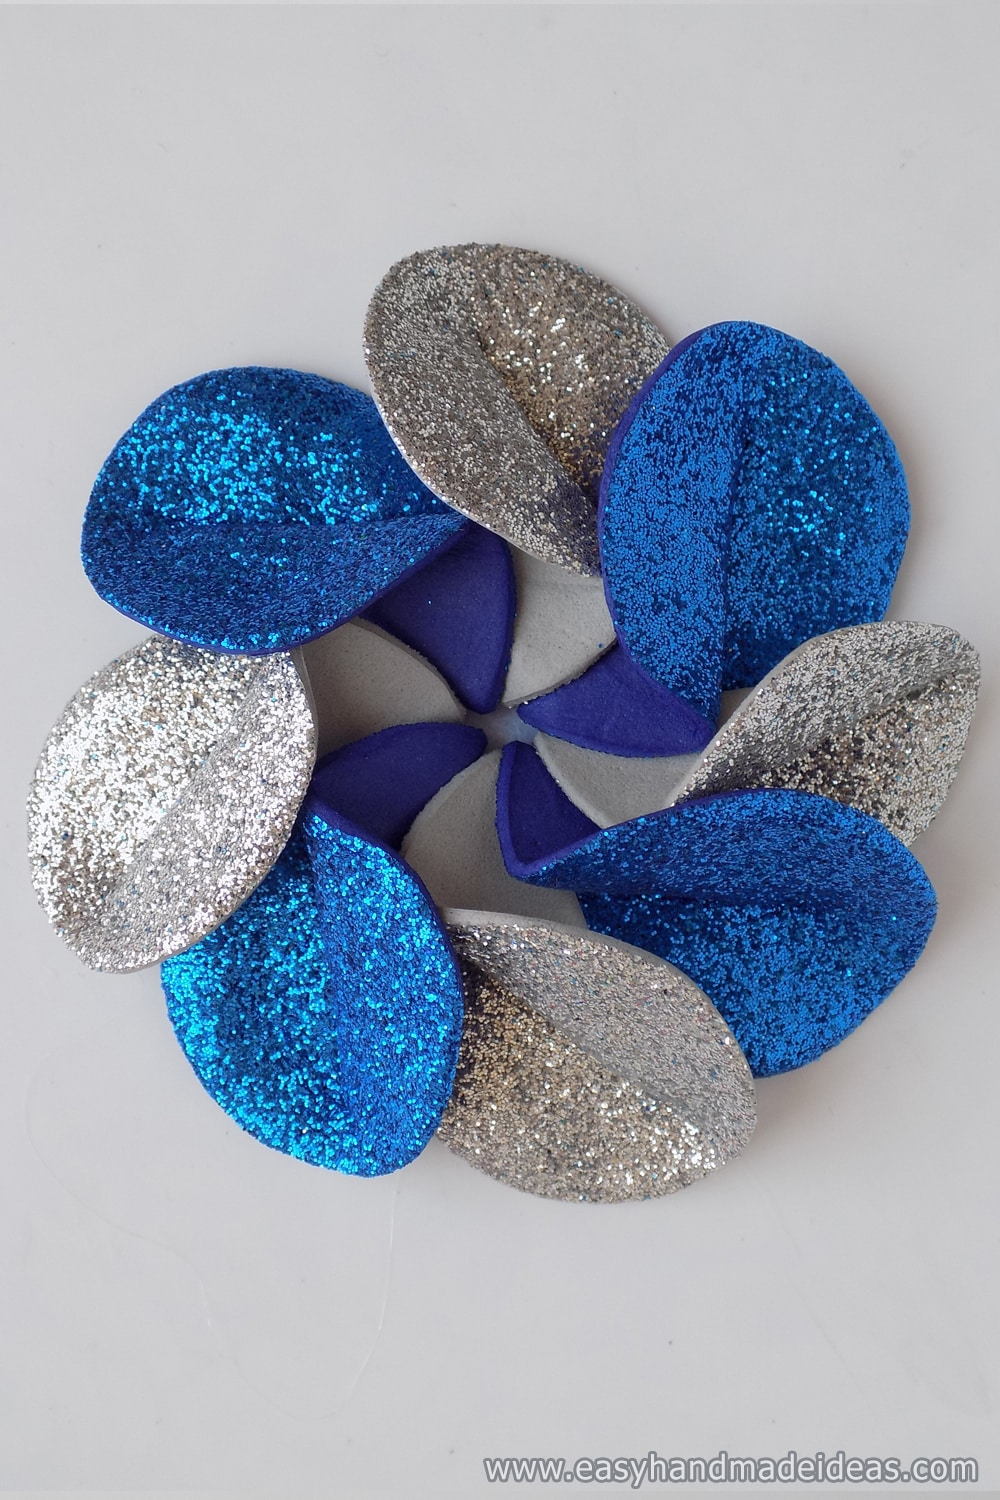 All Flower Petals is Glued to the Circle